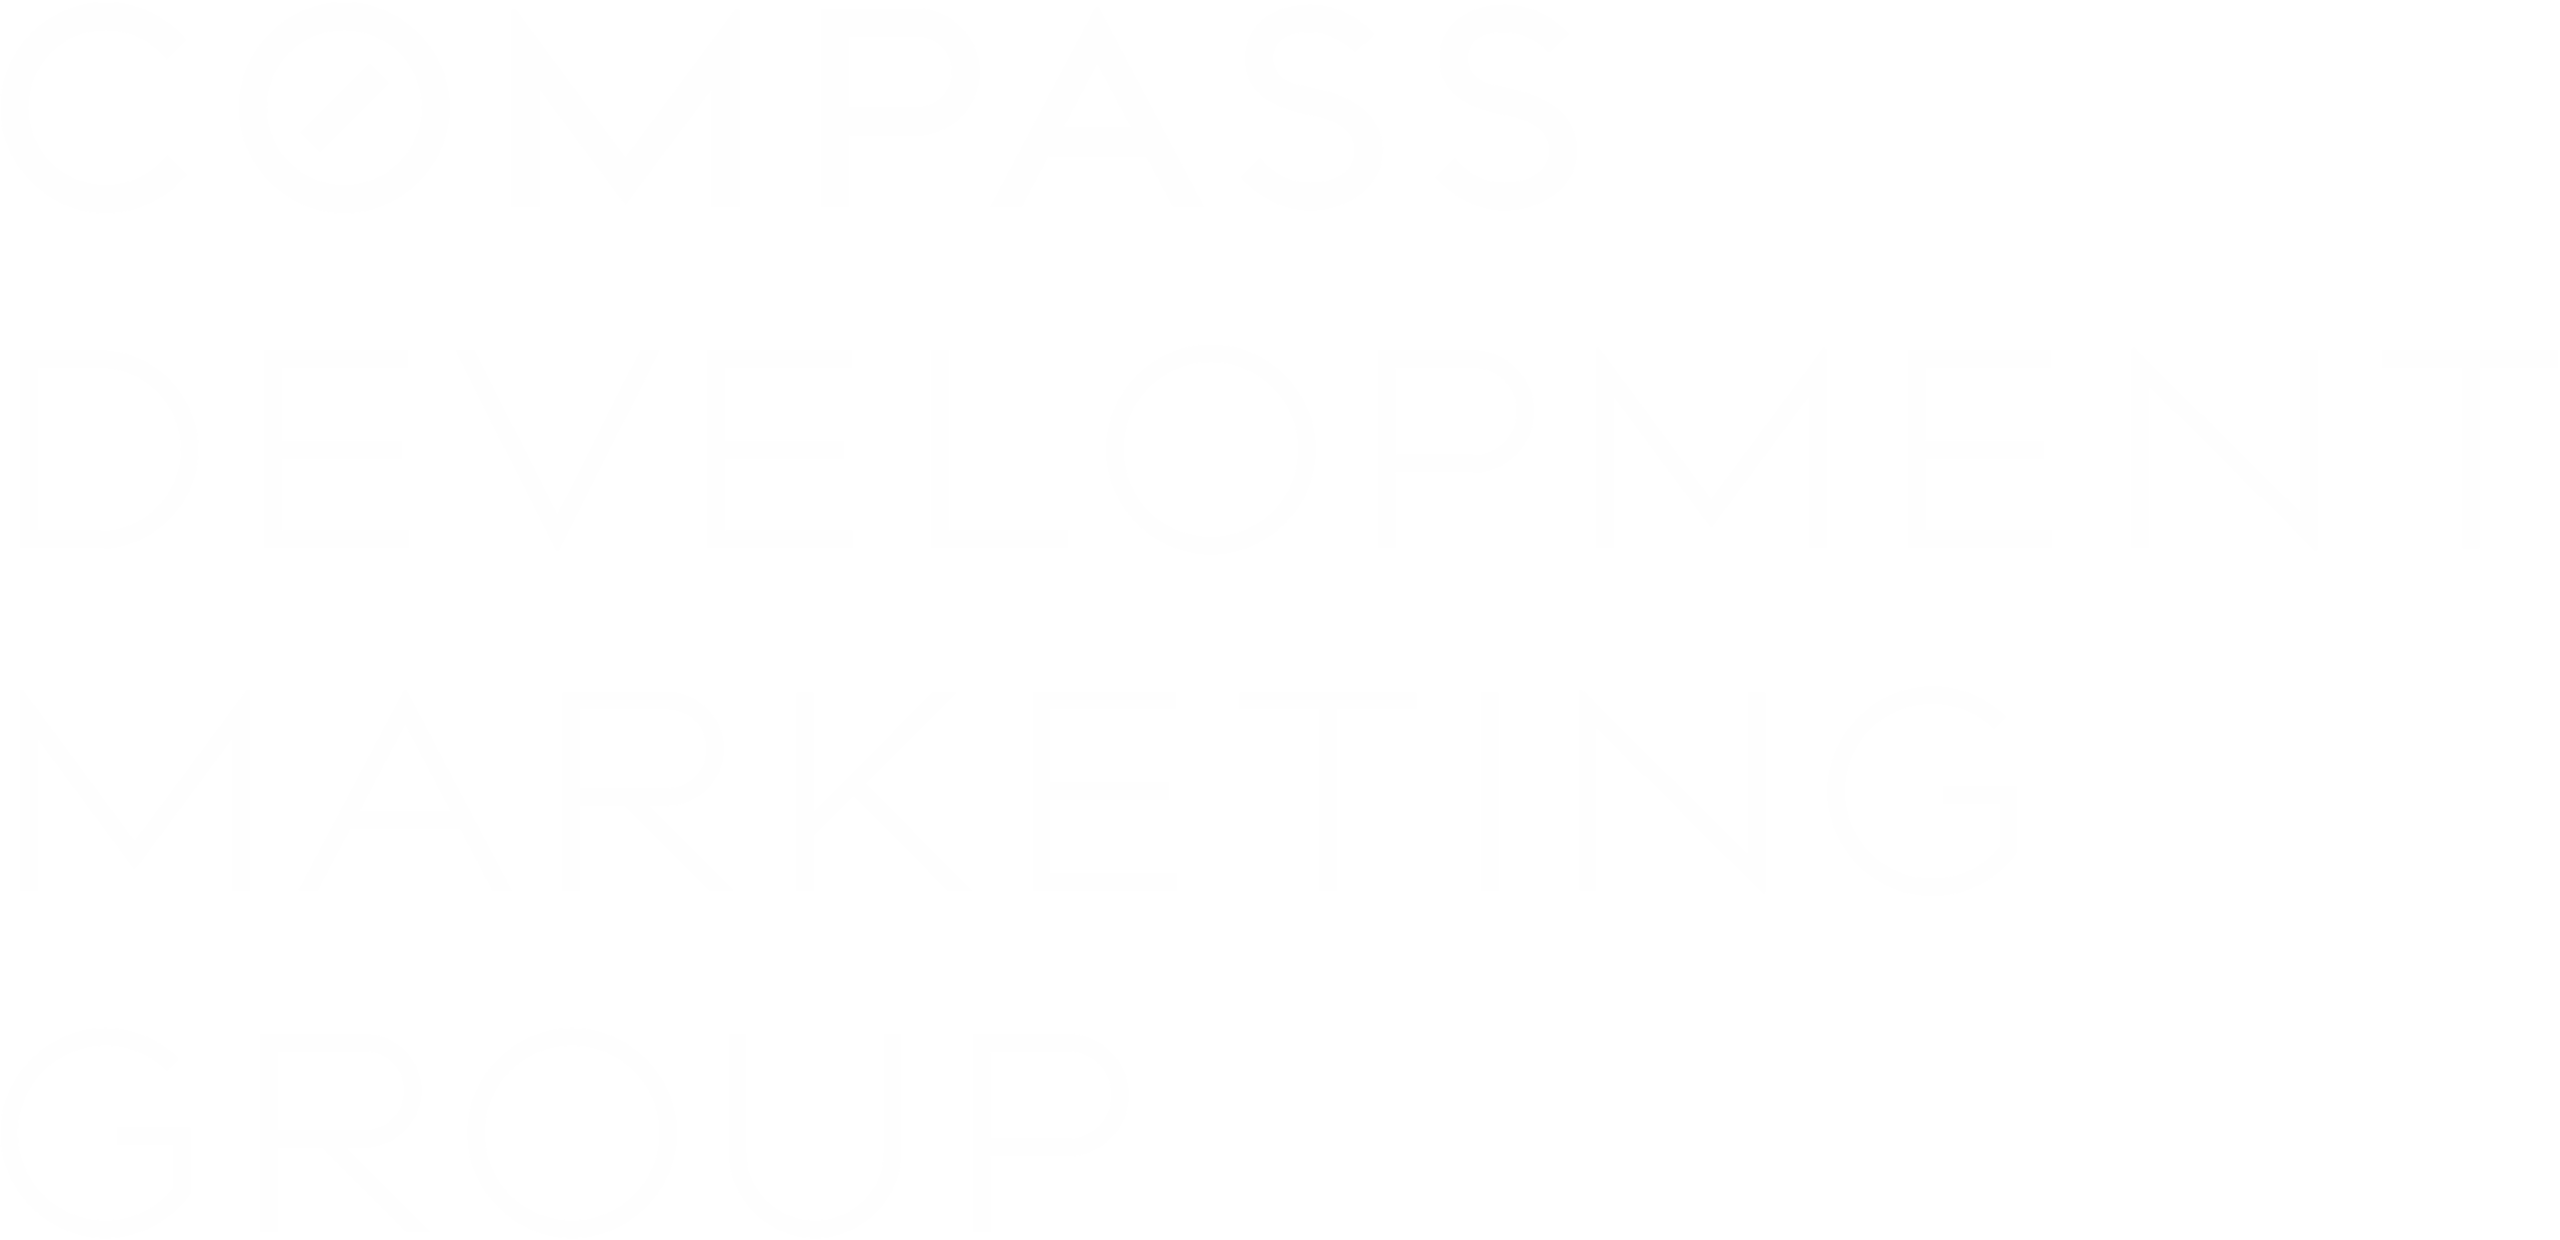 compass development marketing group logo@2x